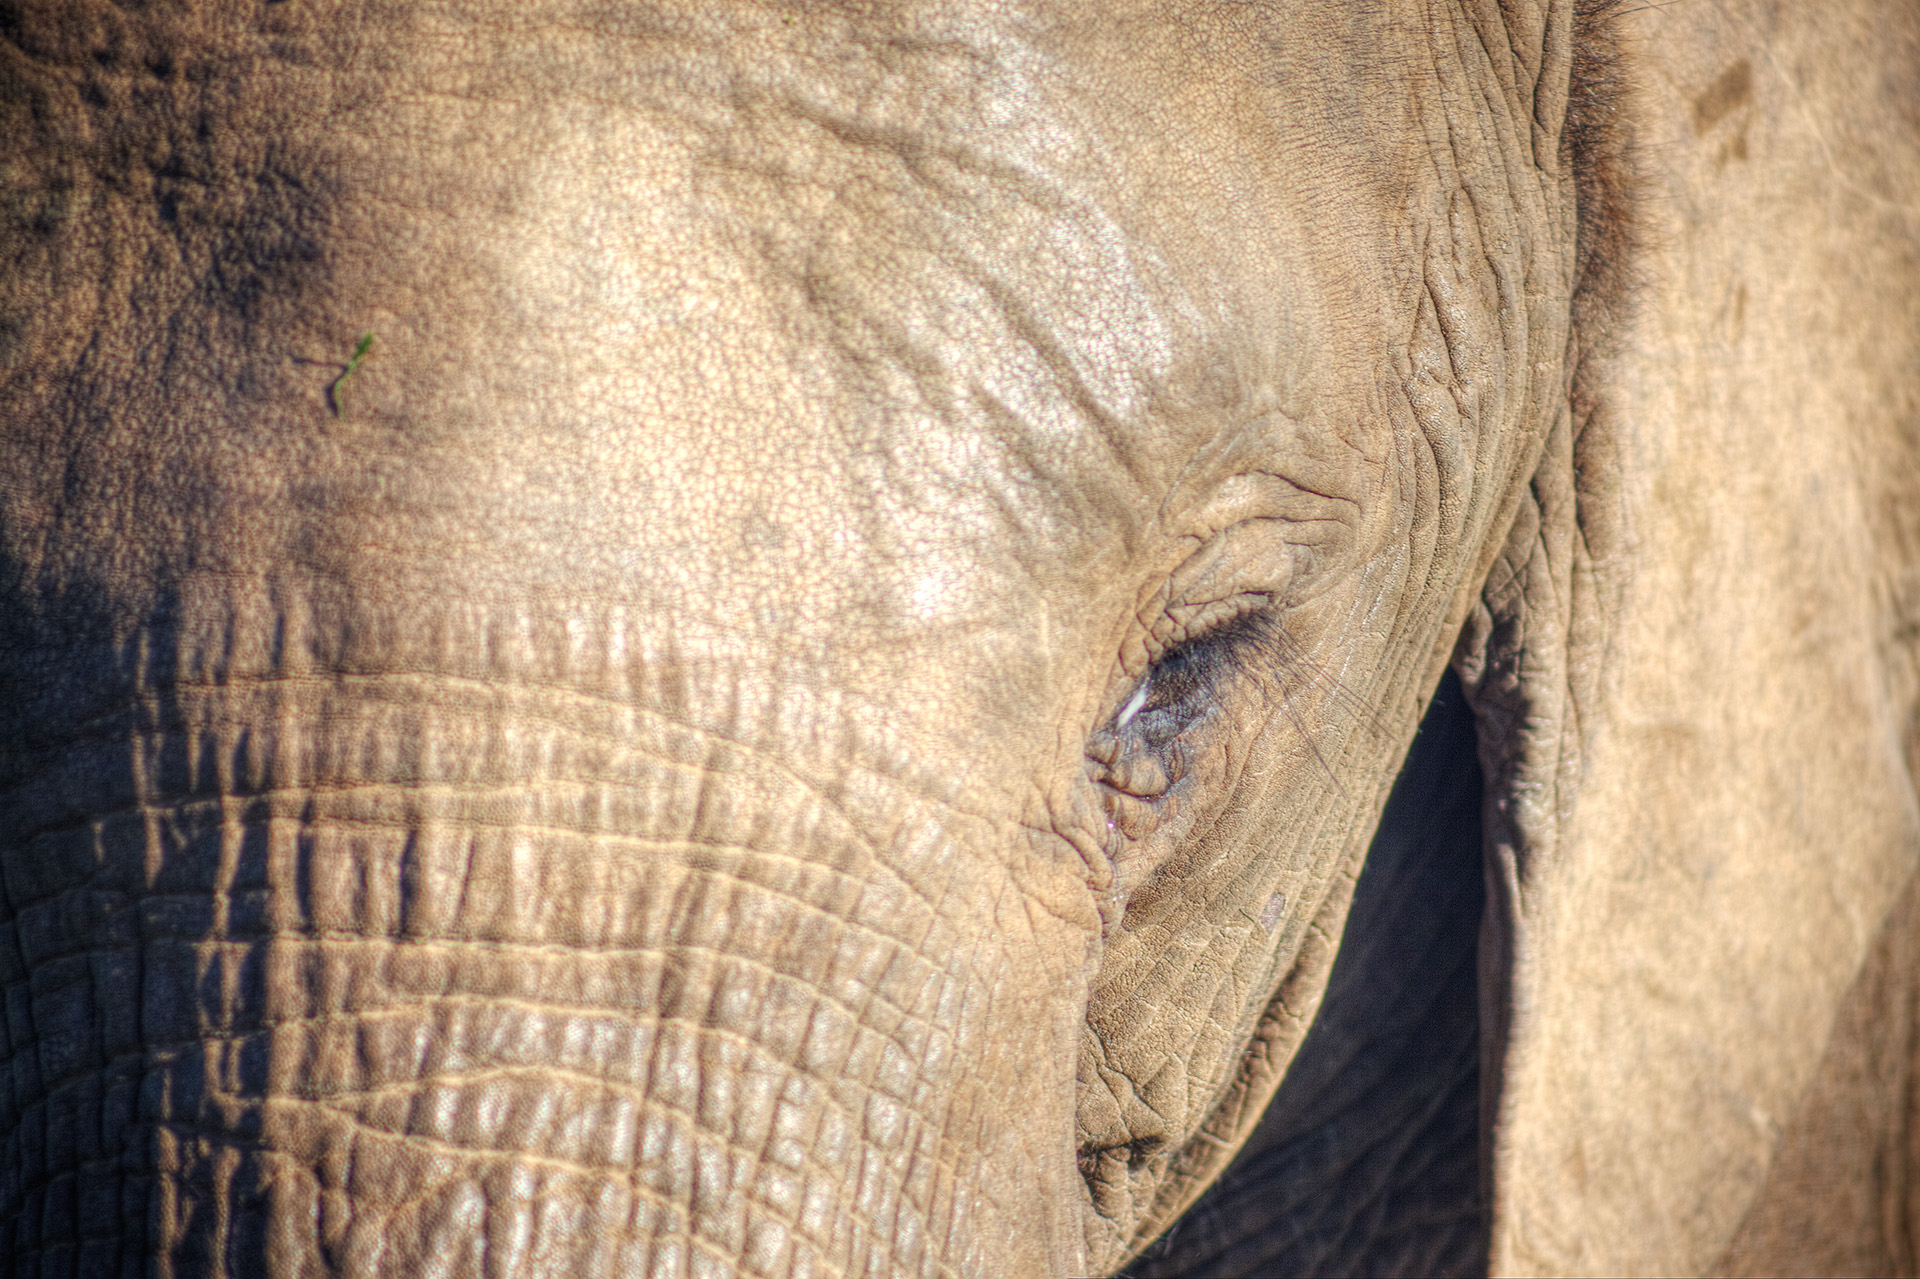 Seeing eye to eye with an elephant.